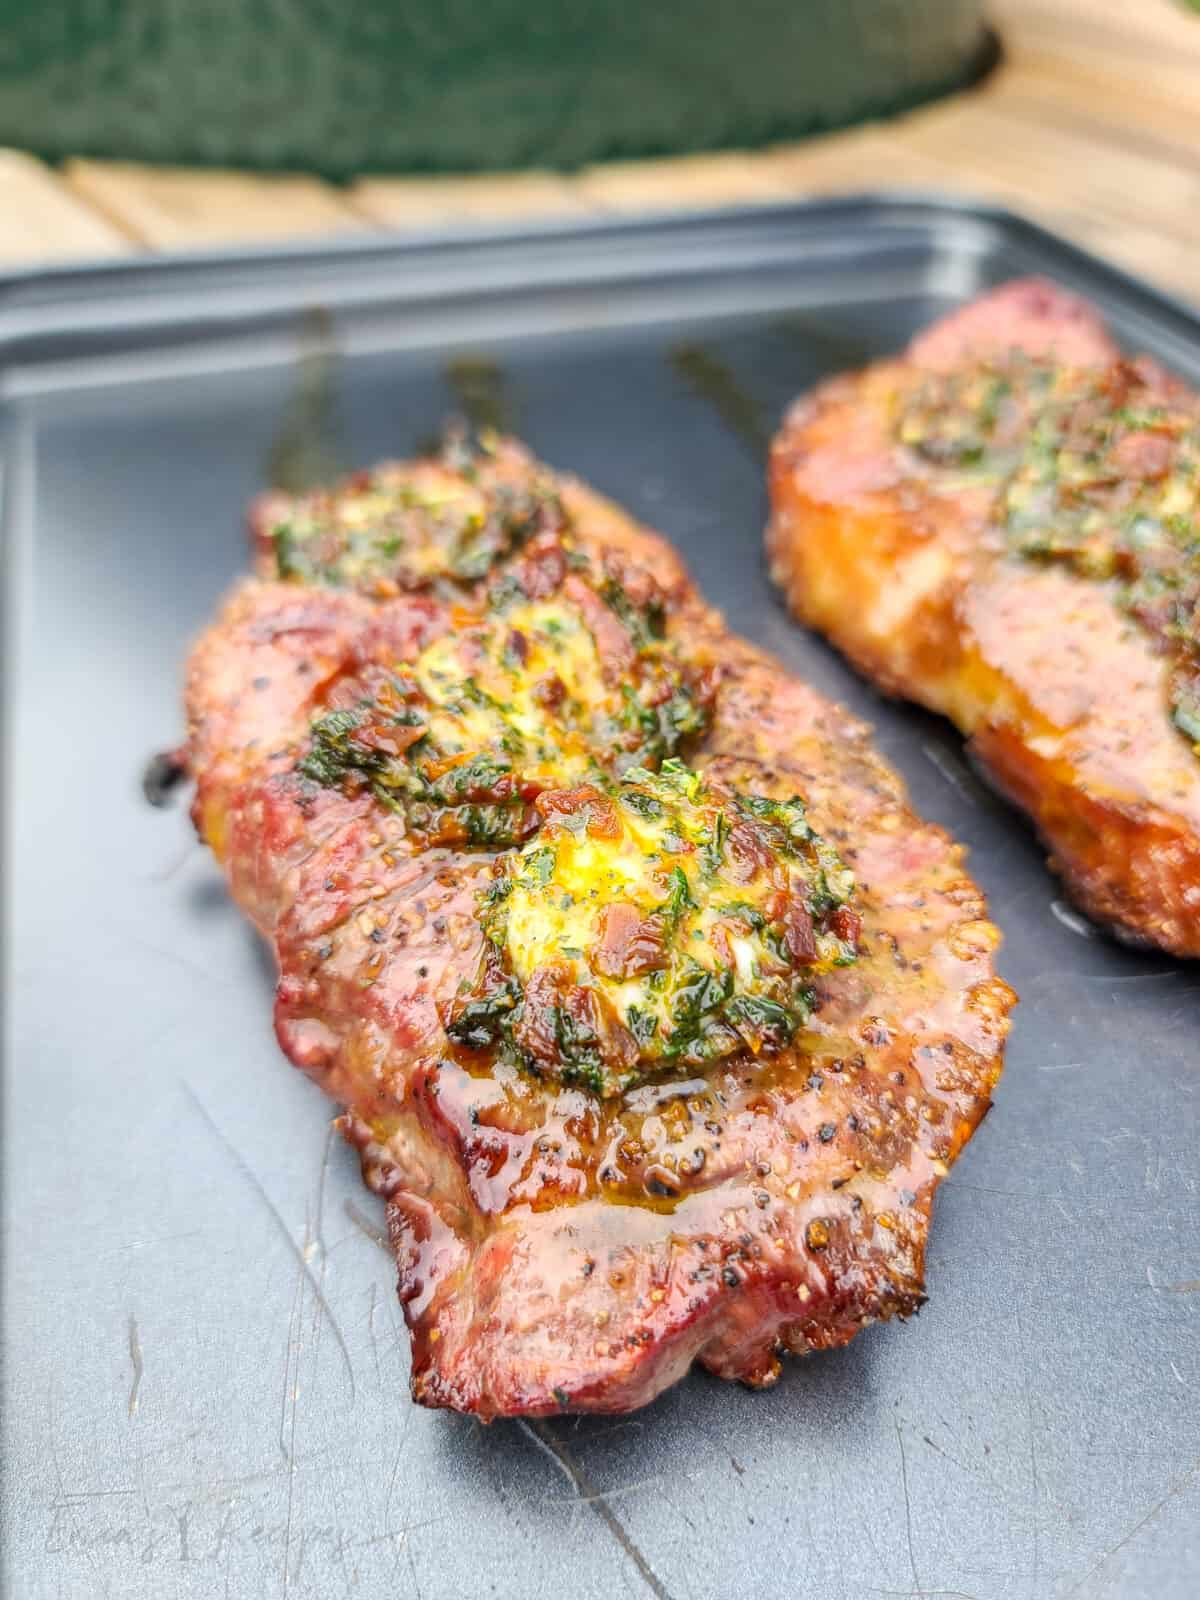 grilled steak on bake sheet topped with sun dried tomato butter